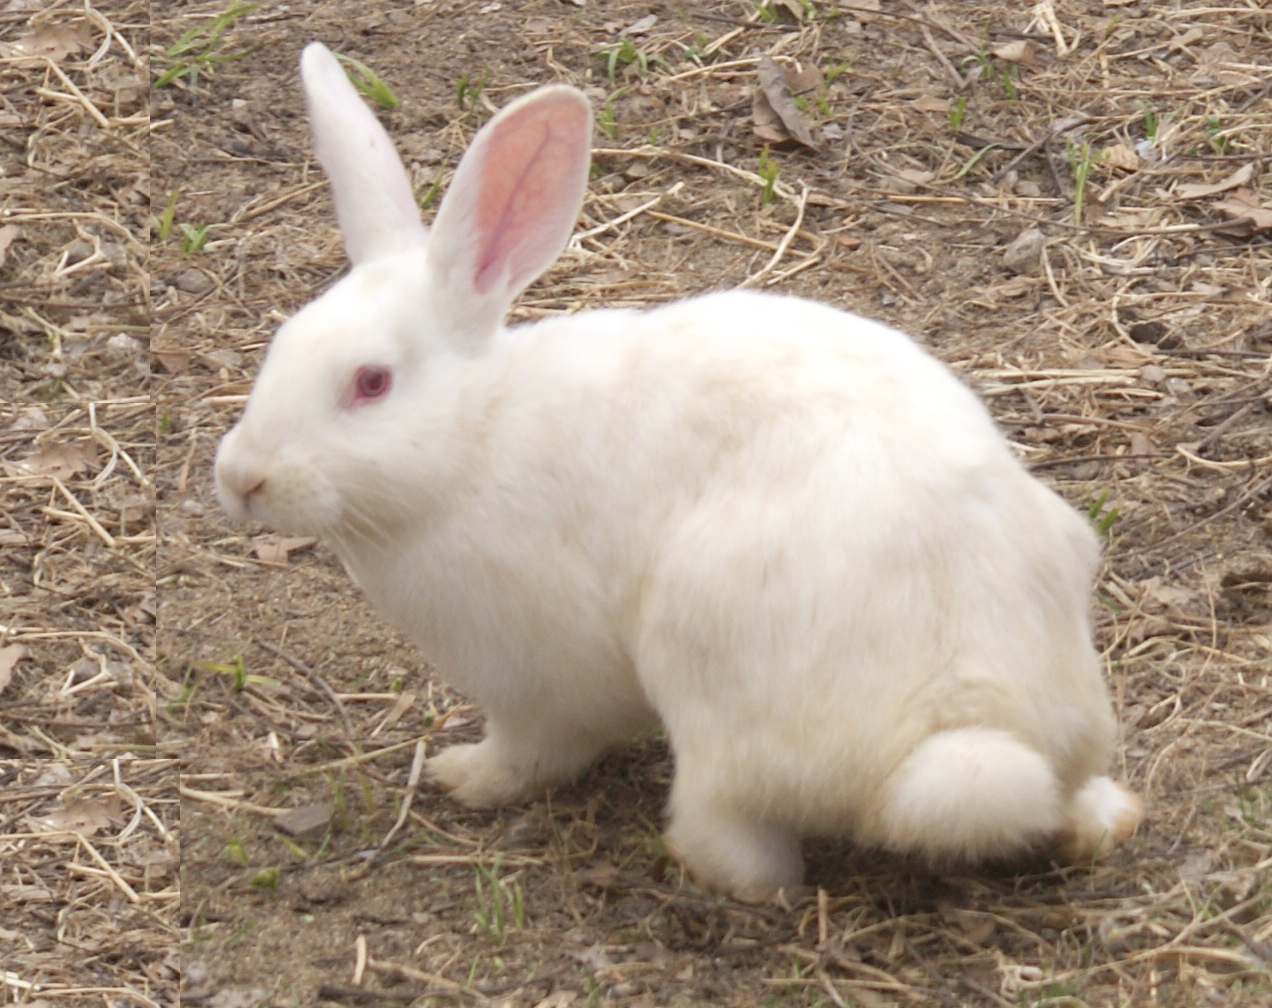 rabbit farming, rabbit farming in Kenya, commercial rabbit farming, rabbit farming business, commercial rabbit farming business, rabbit farming business in Kenya, commercial rabbit farming business in Knya